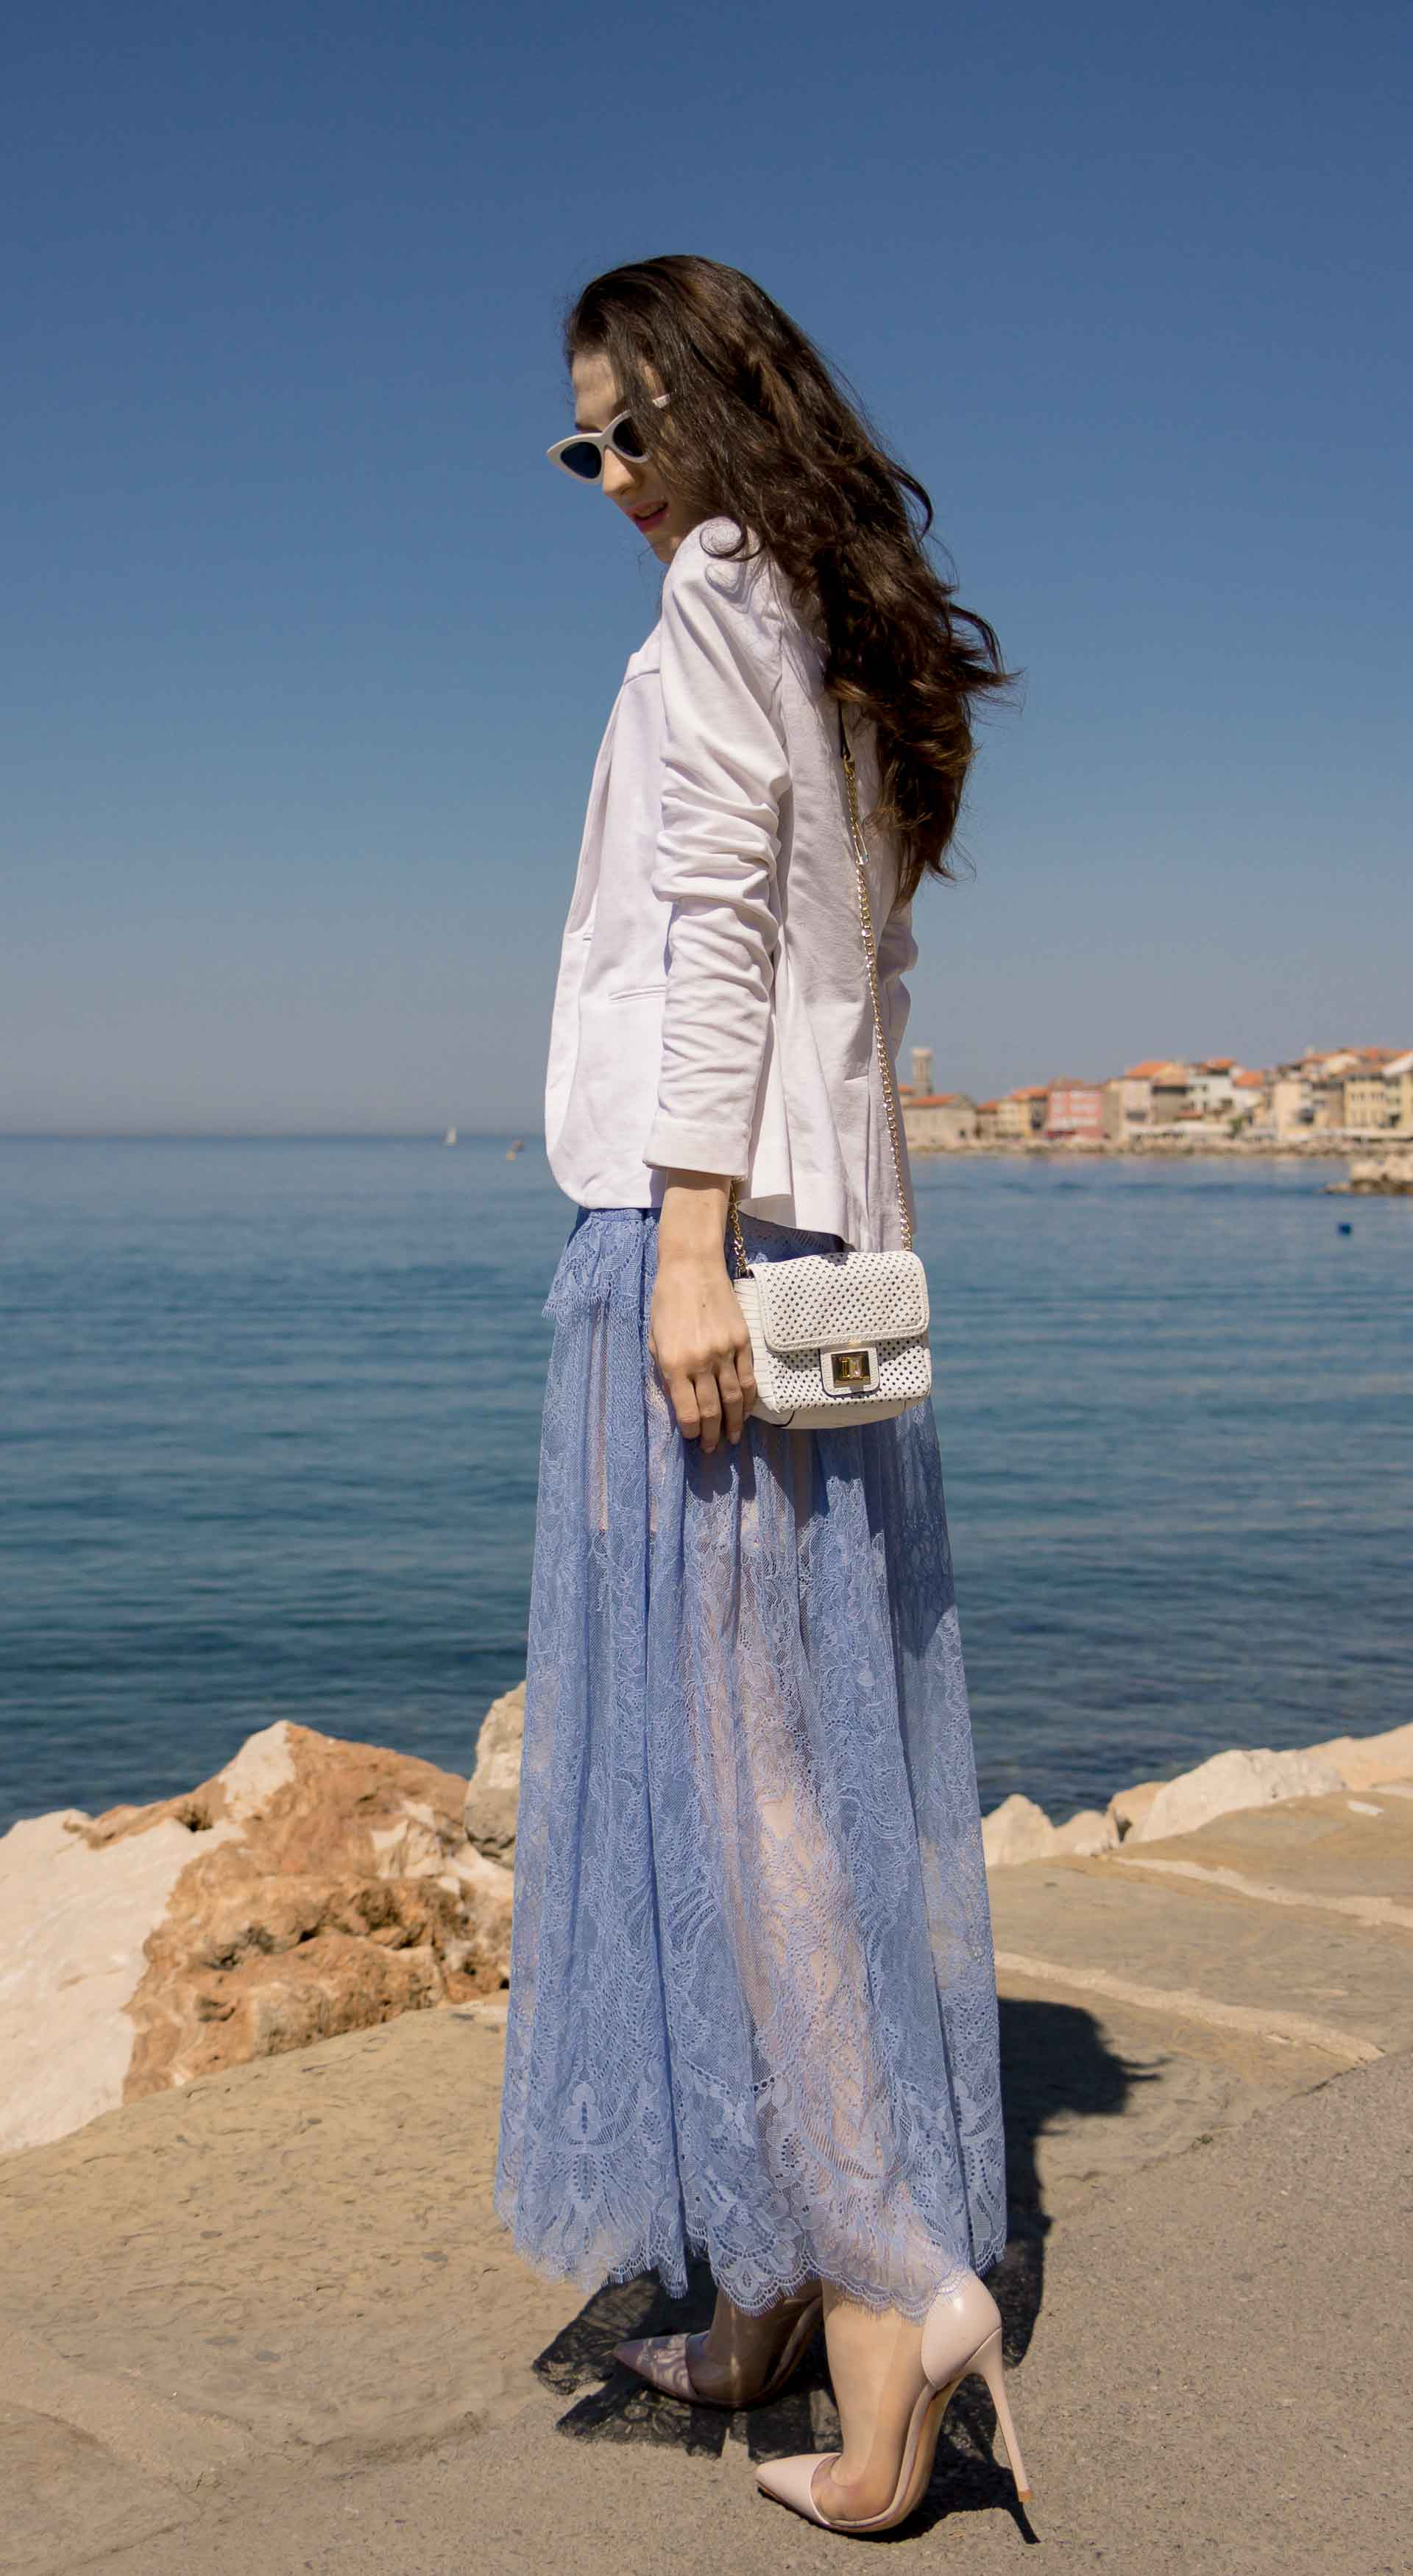 Veronika Lipar Fashion Blogger of Brunette from Wall Street wearing Self-Portrait blue lace midi dress, white single button blazer, blush Gianvito Rossi plexi pumps, white shoulder bag, Lespecs white cat eye sunglasses for a wedding by the sea